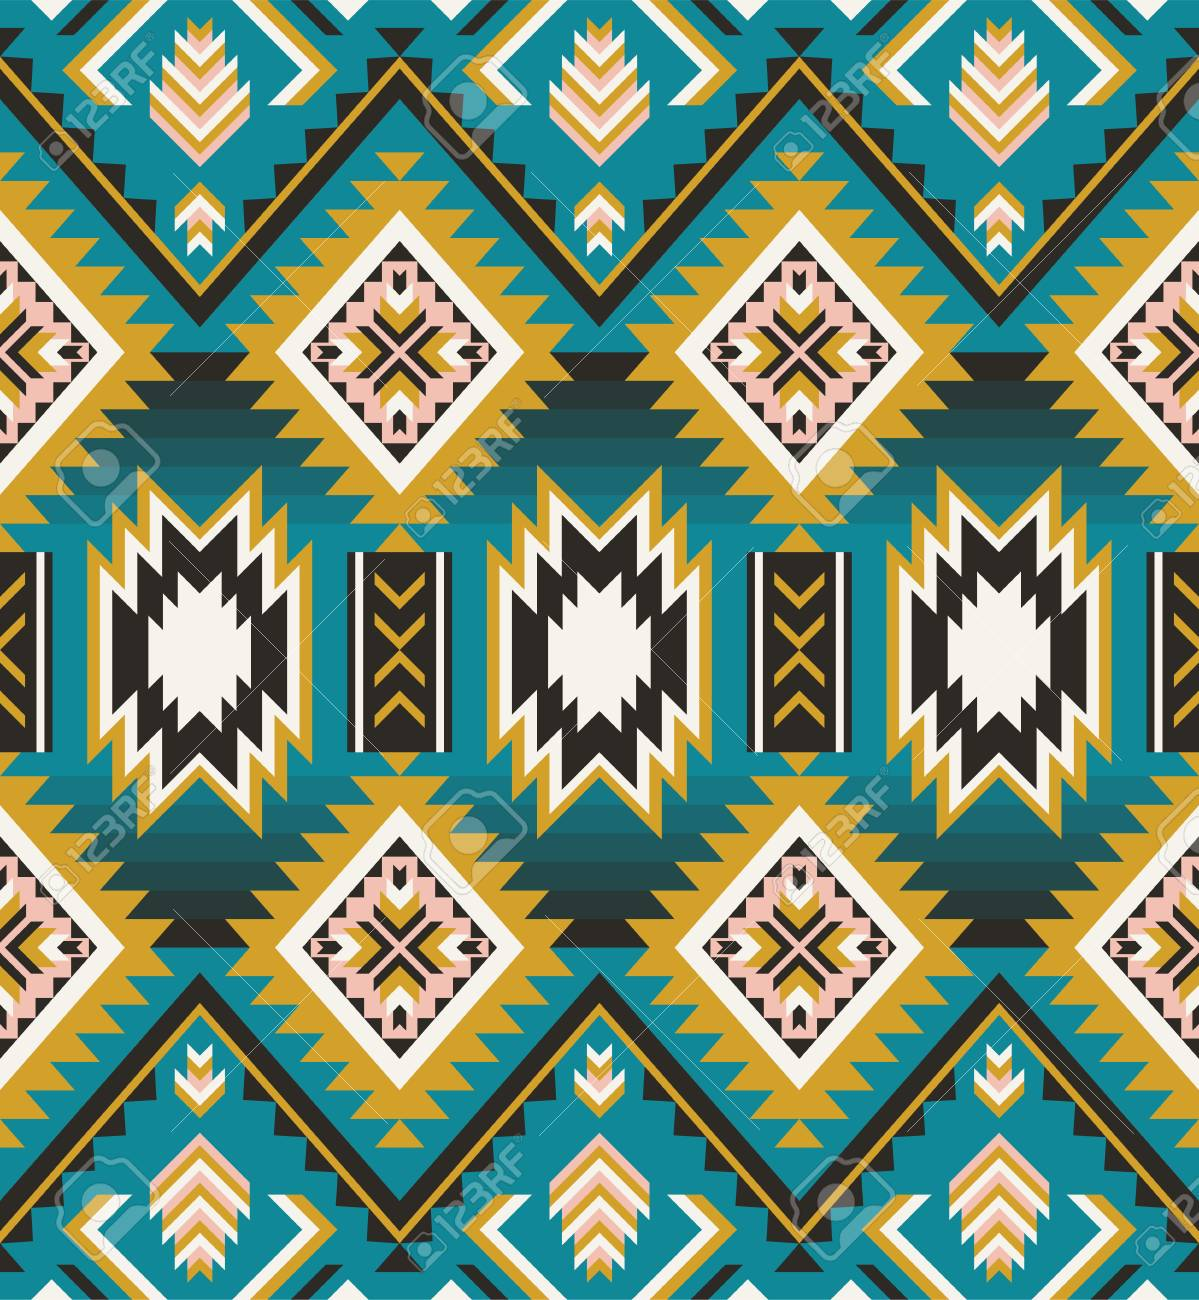 picture about Native American Designs Printable called Aztec geometric seamless habit. Indigenous american, indian southwest..